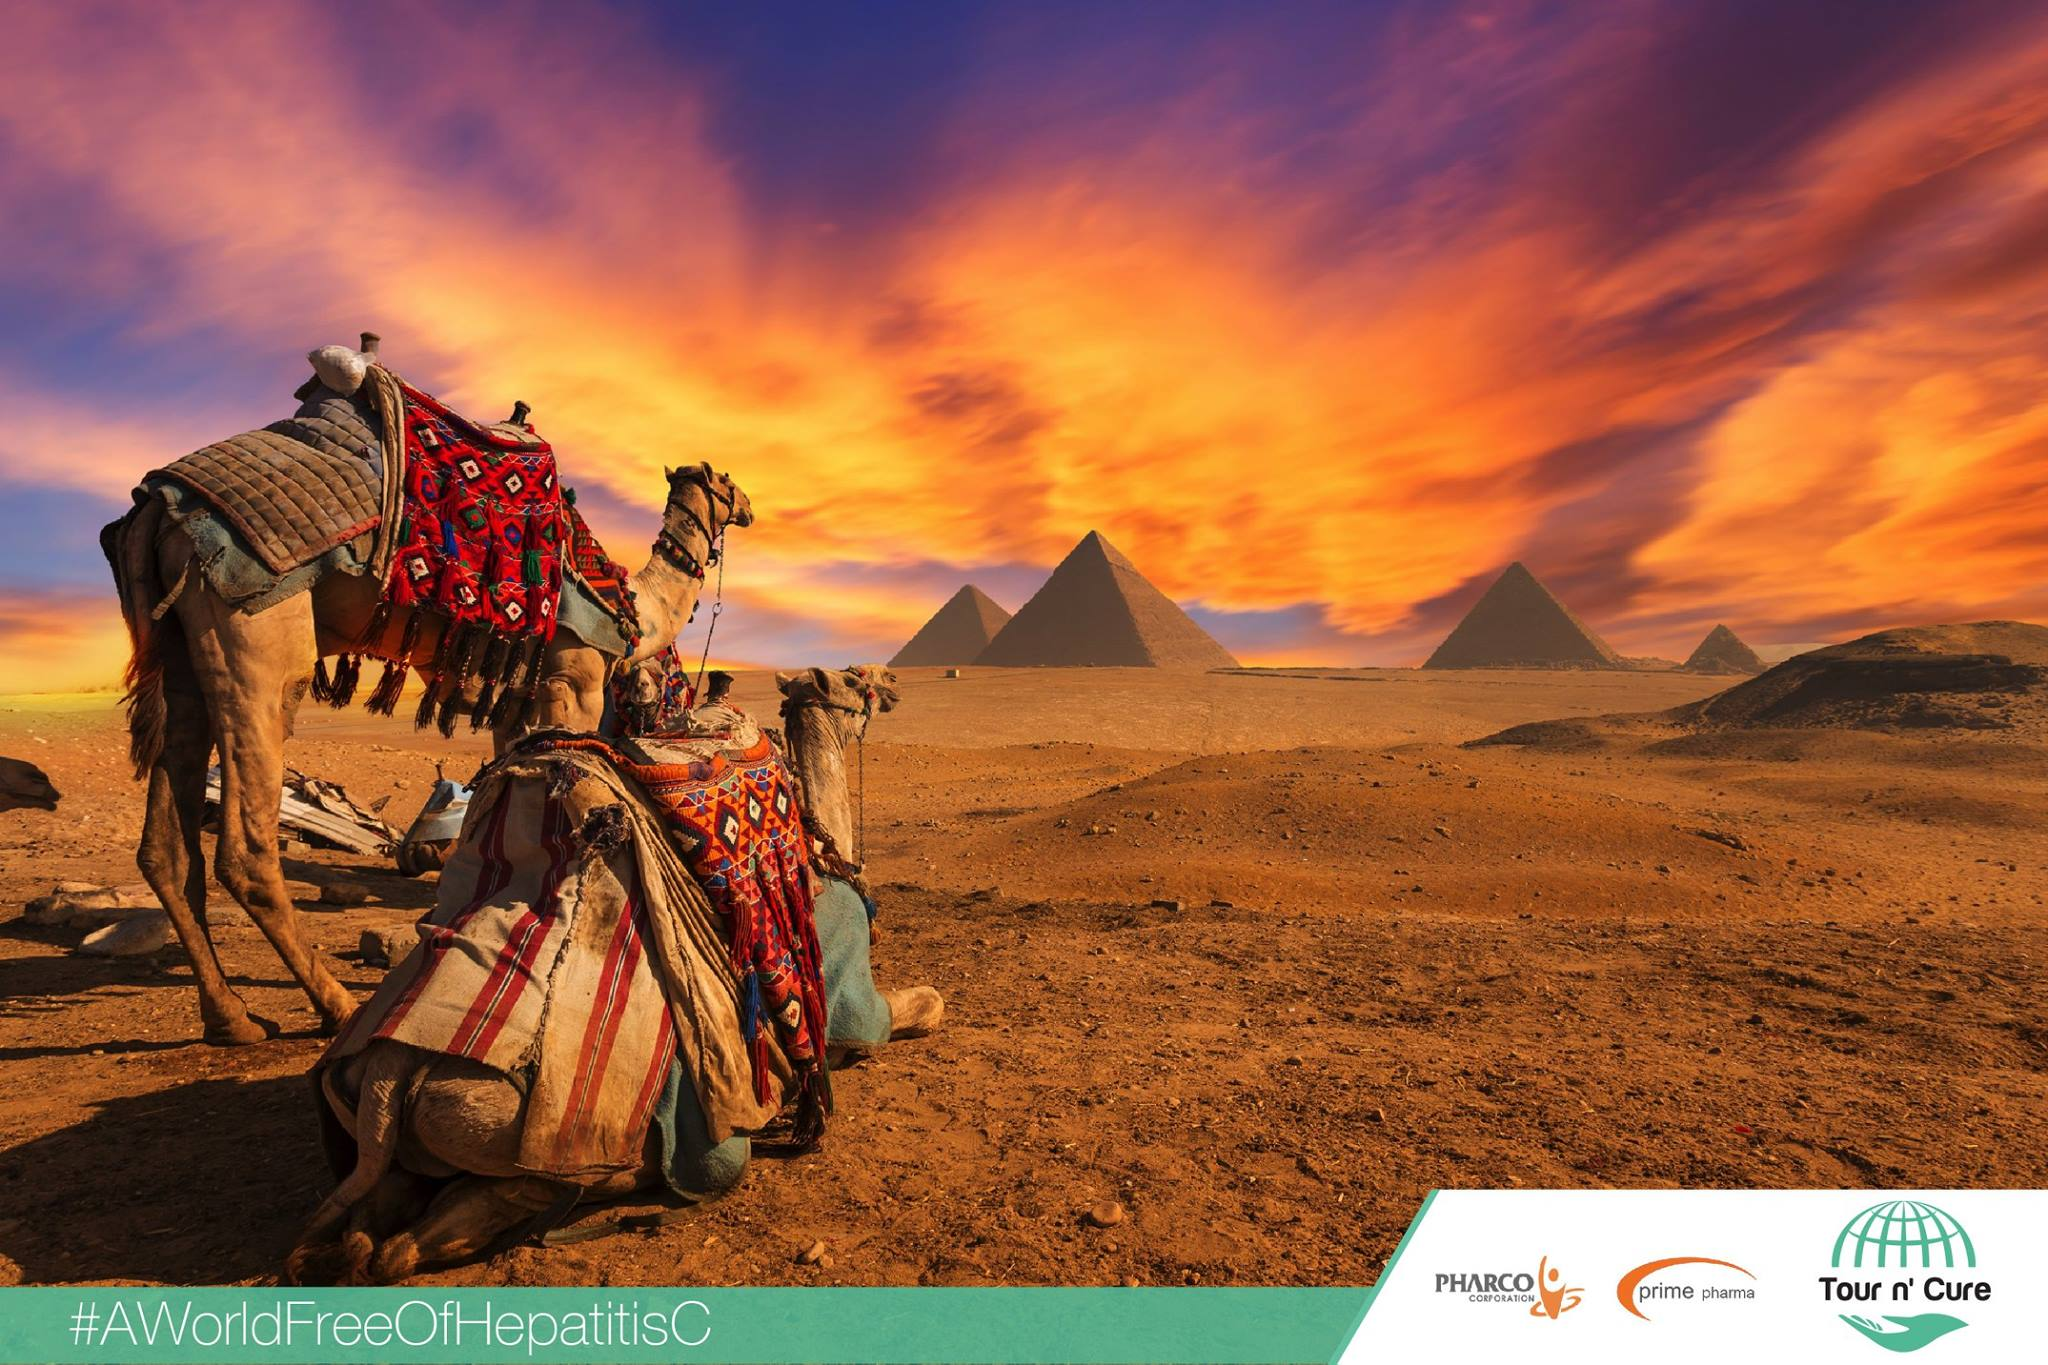 Tour n' Cure: Egypt to Increase Tourism by Inviting Hepatitis C ...